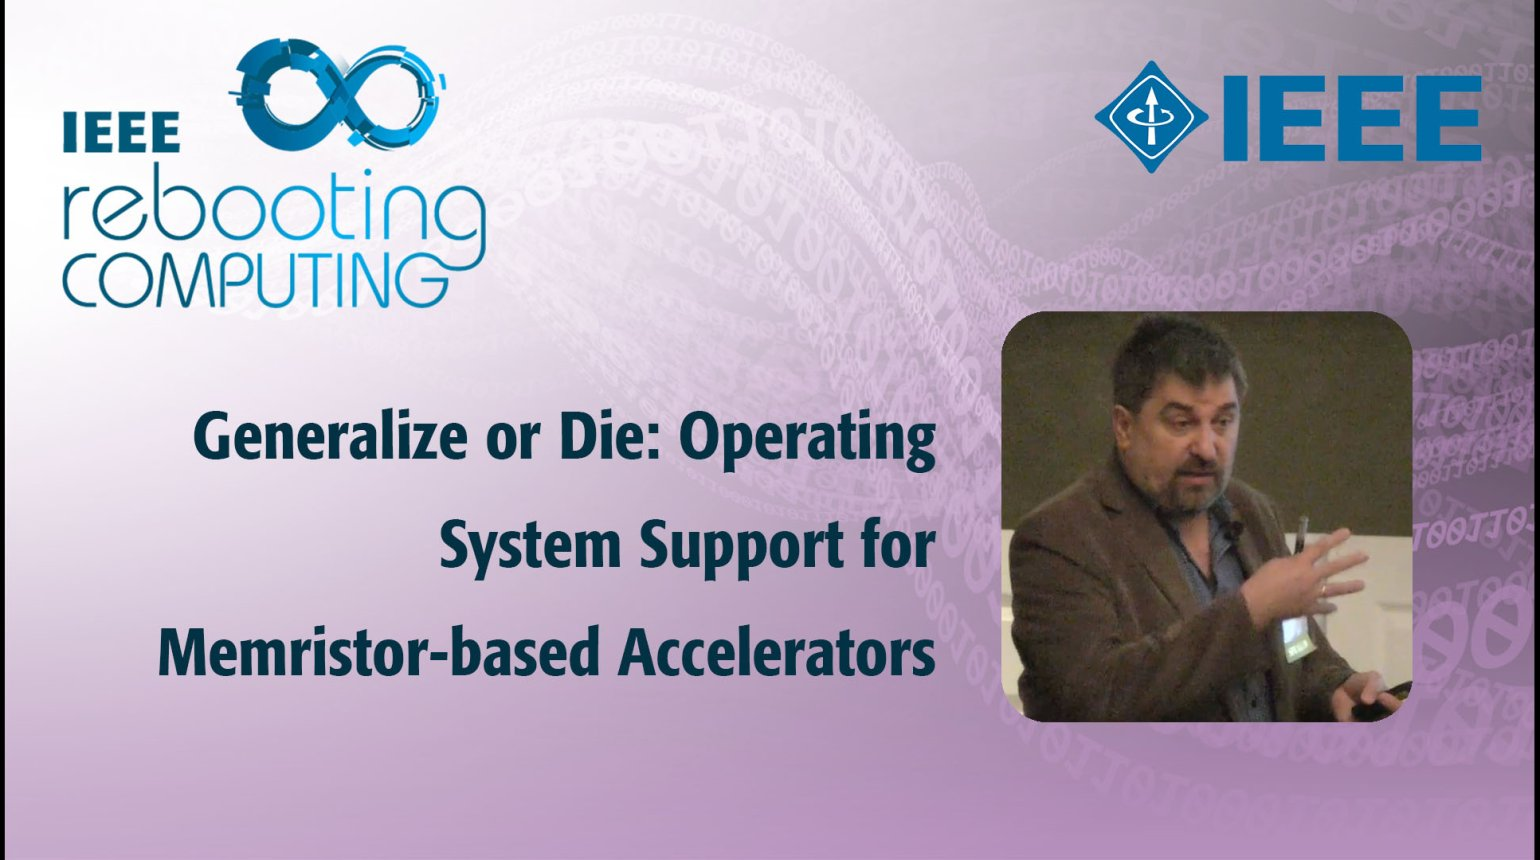 Generalize or Die: Operating System Support for Memristor-based Accelerators: IEEE Rebooting Computing 2017